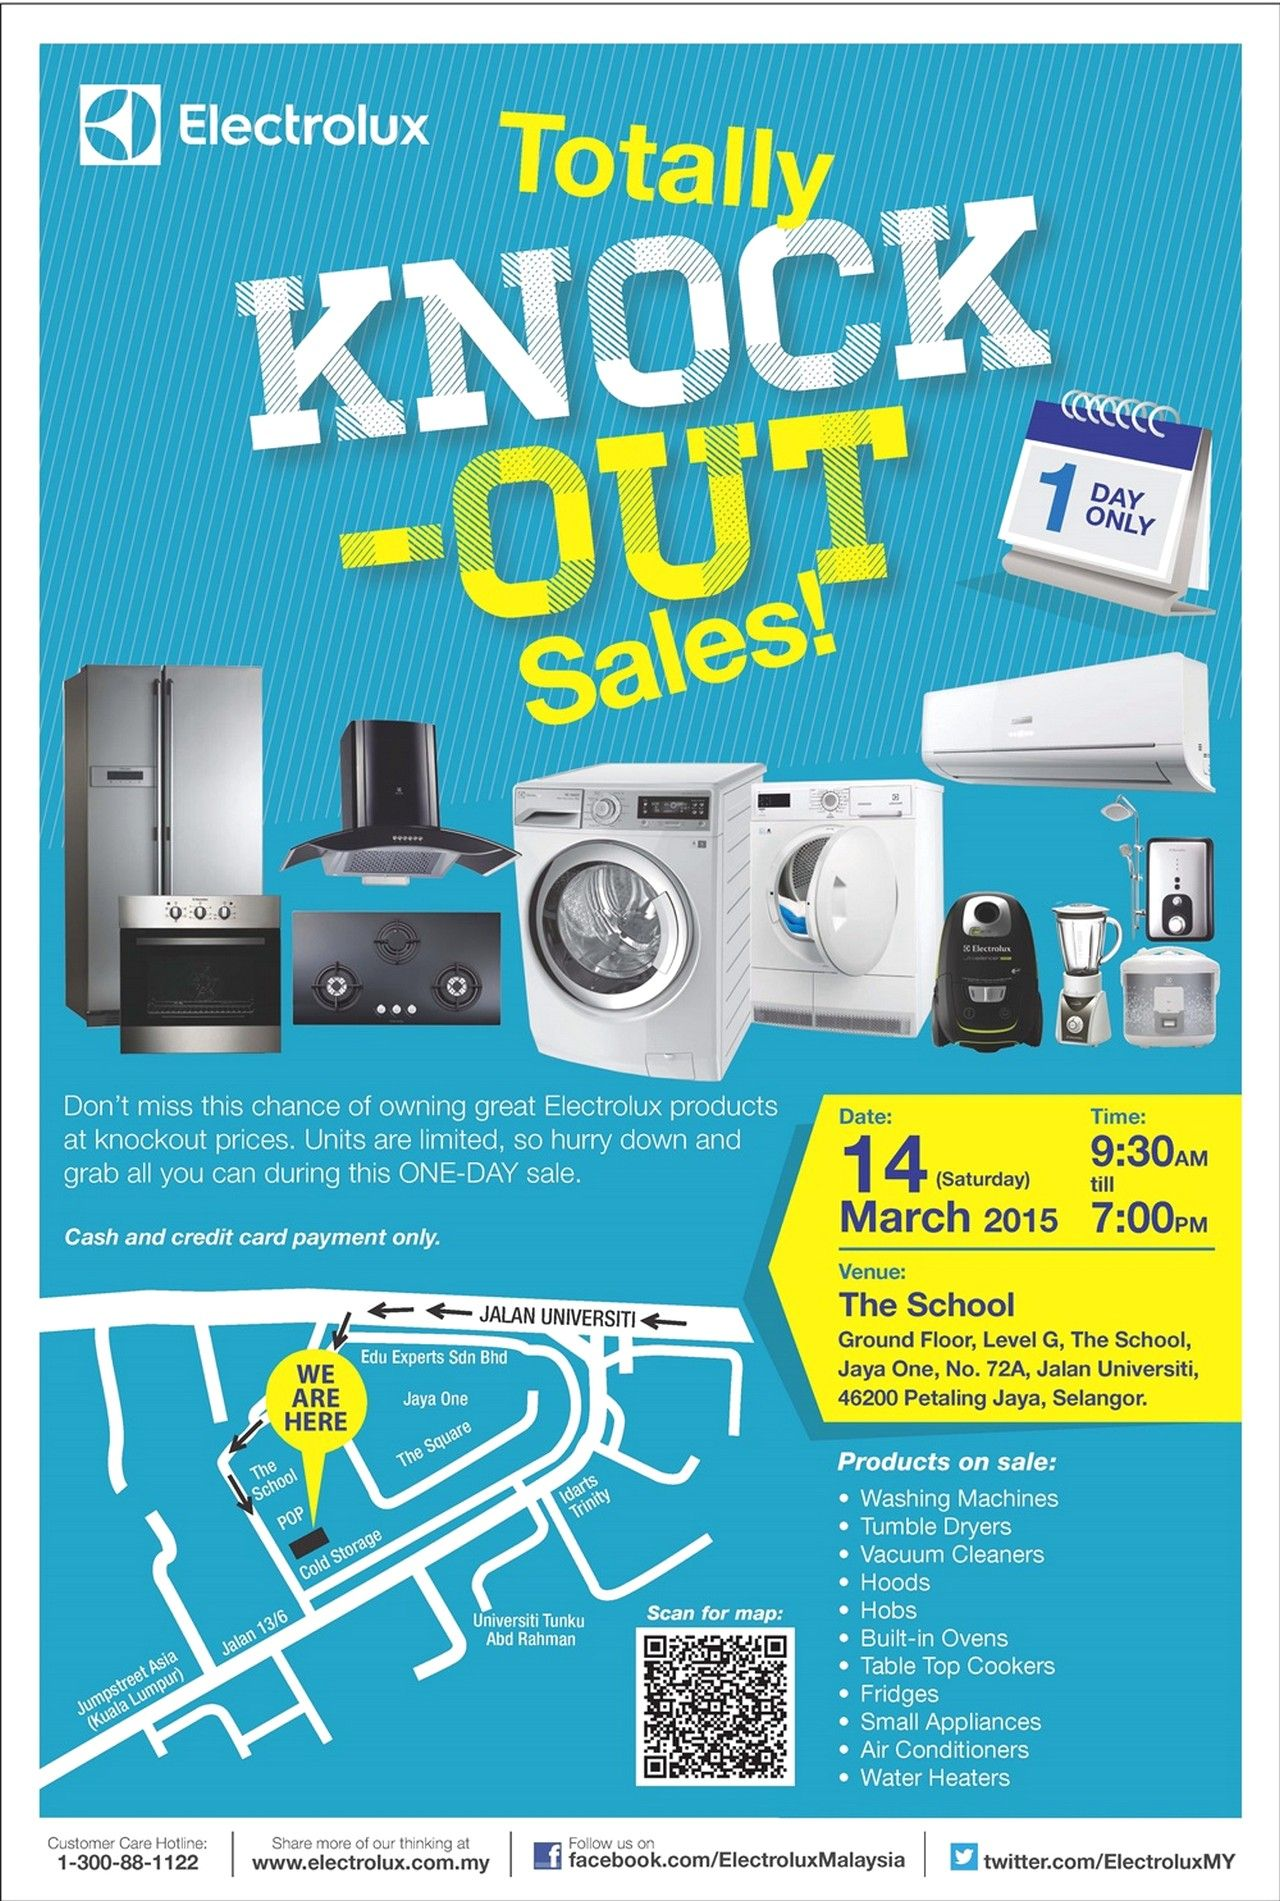 Branded Home Appliances Clearance Warehouse Sale In Malaysia